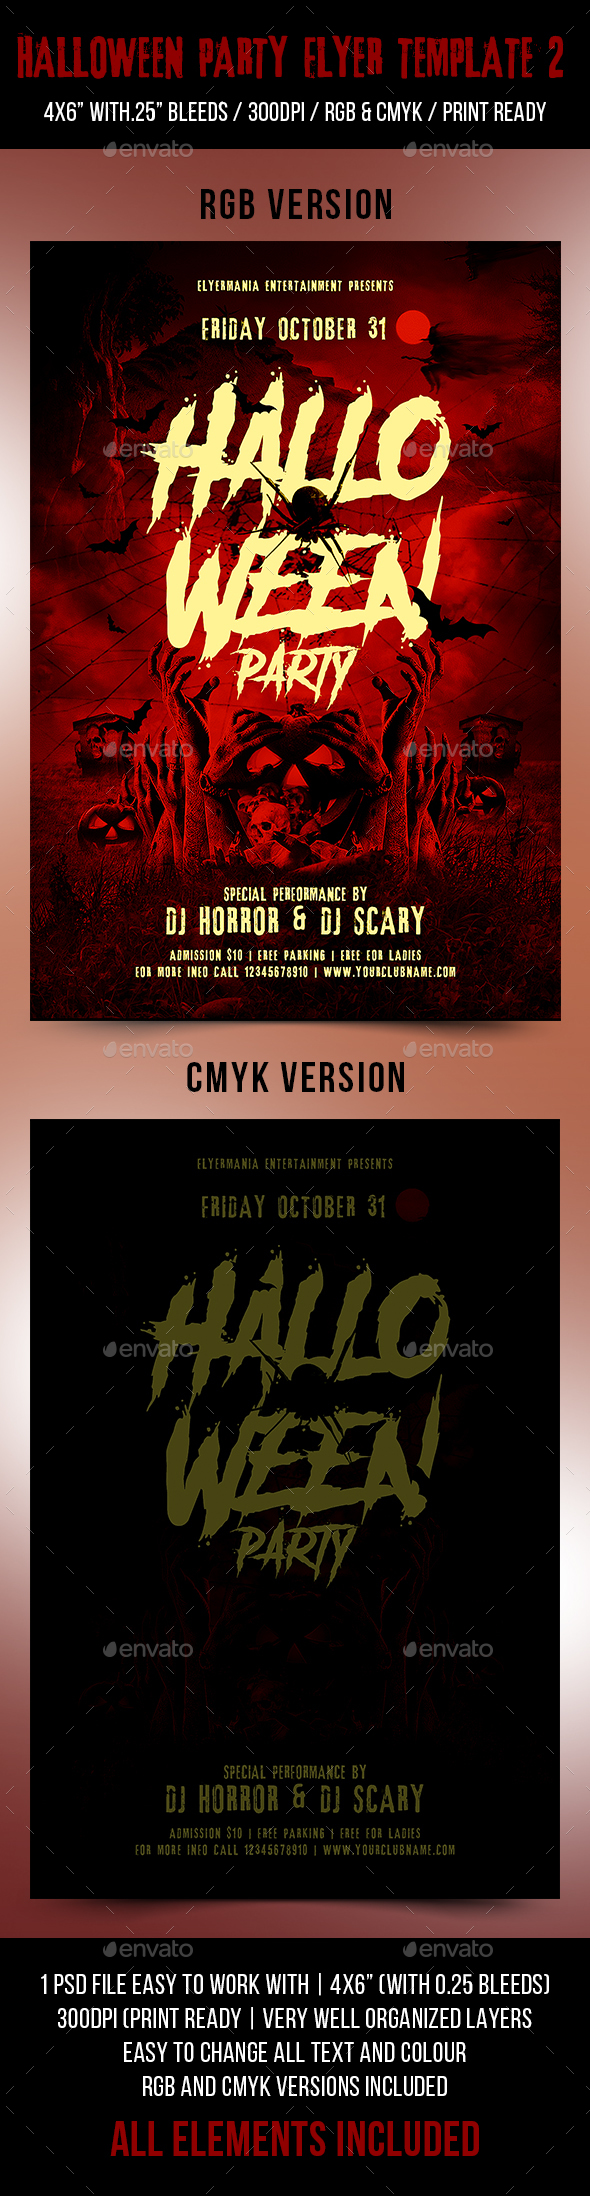 Halloween Flyer Party Template 2 - Flyers Print Templates